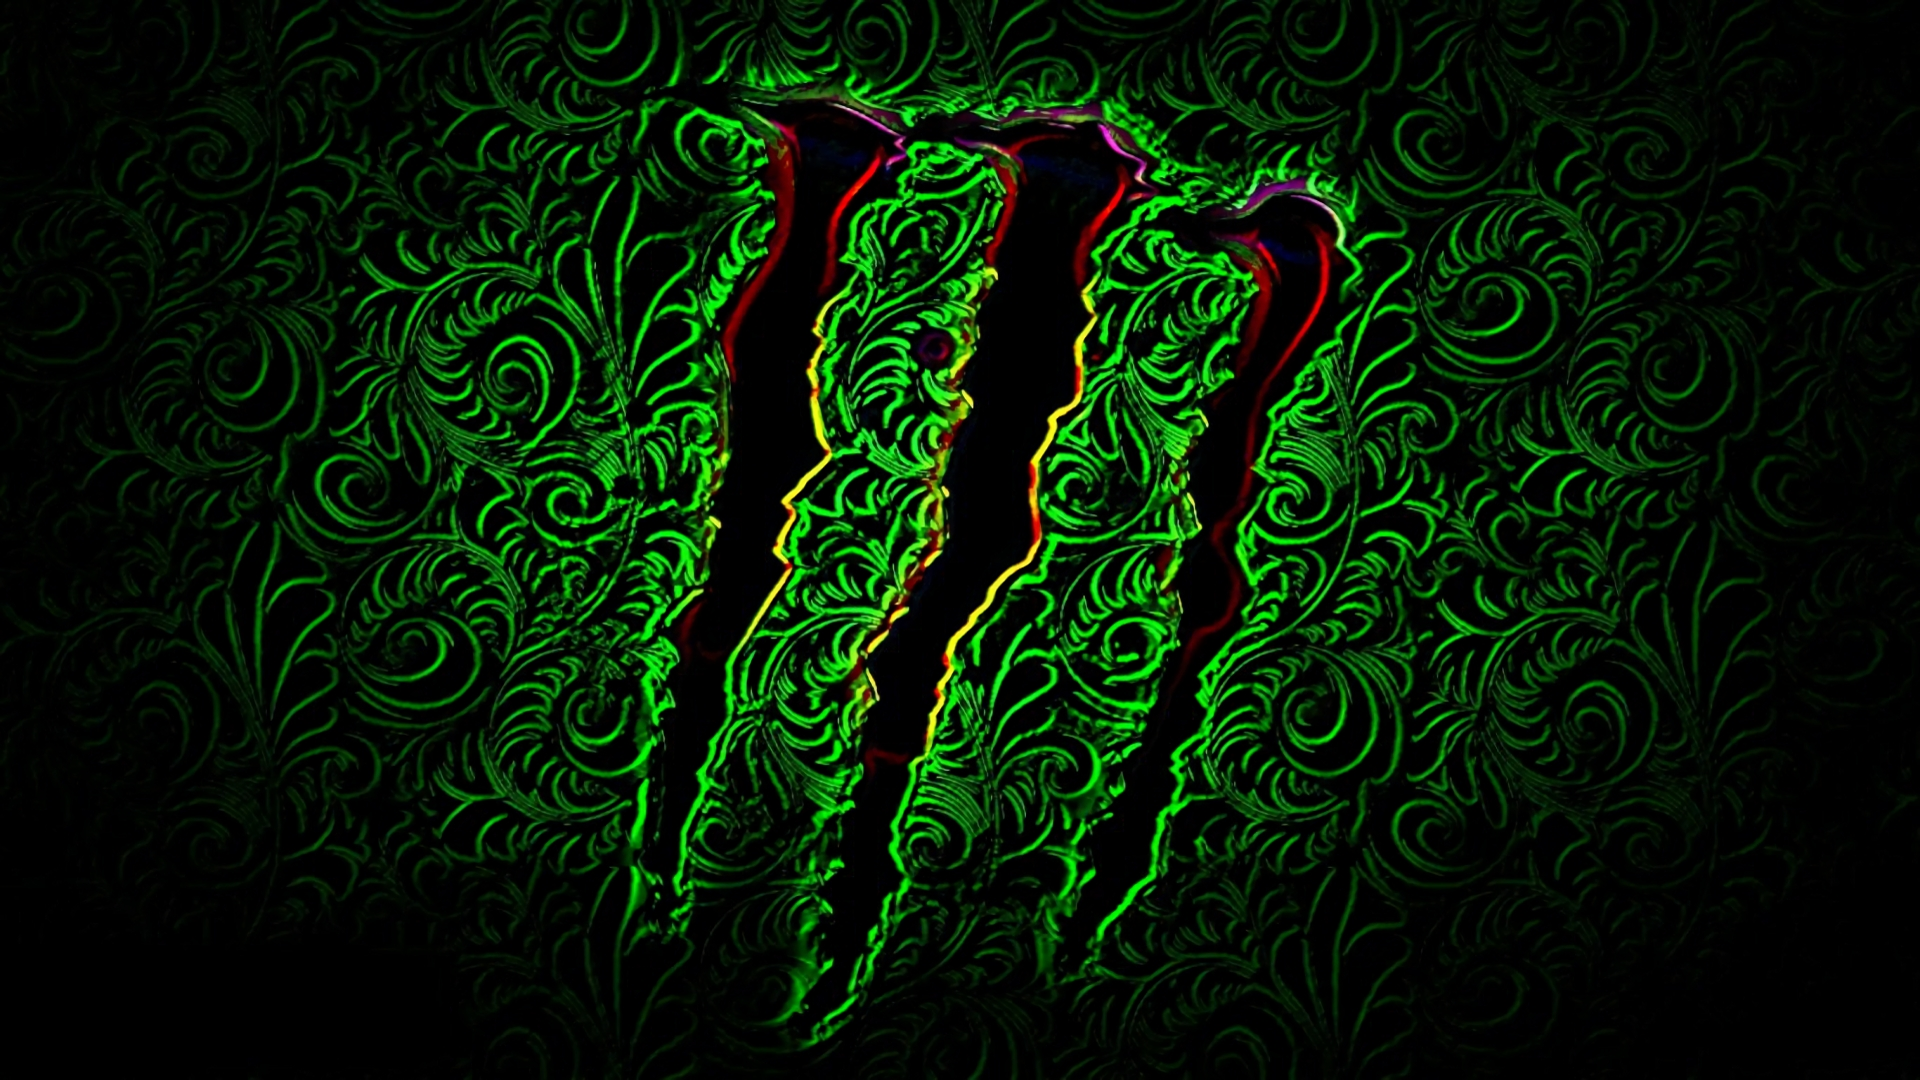 monster energy drink full hd fond d'écran and arrière-plan